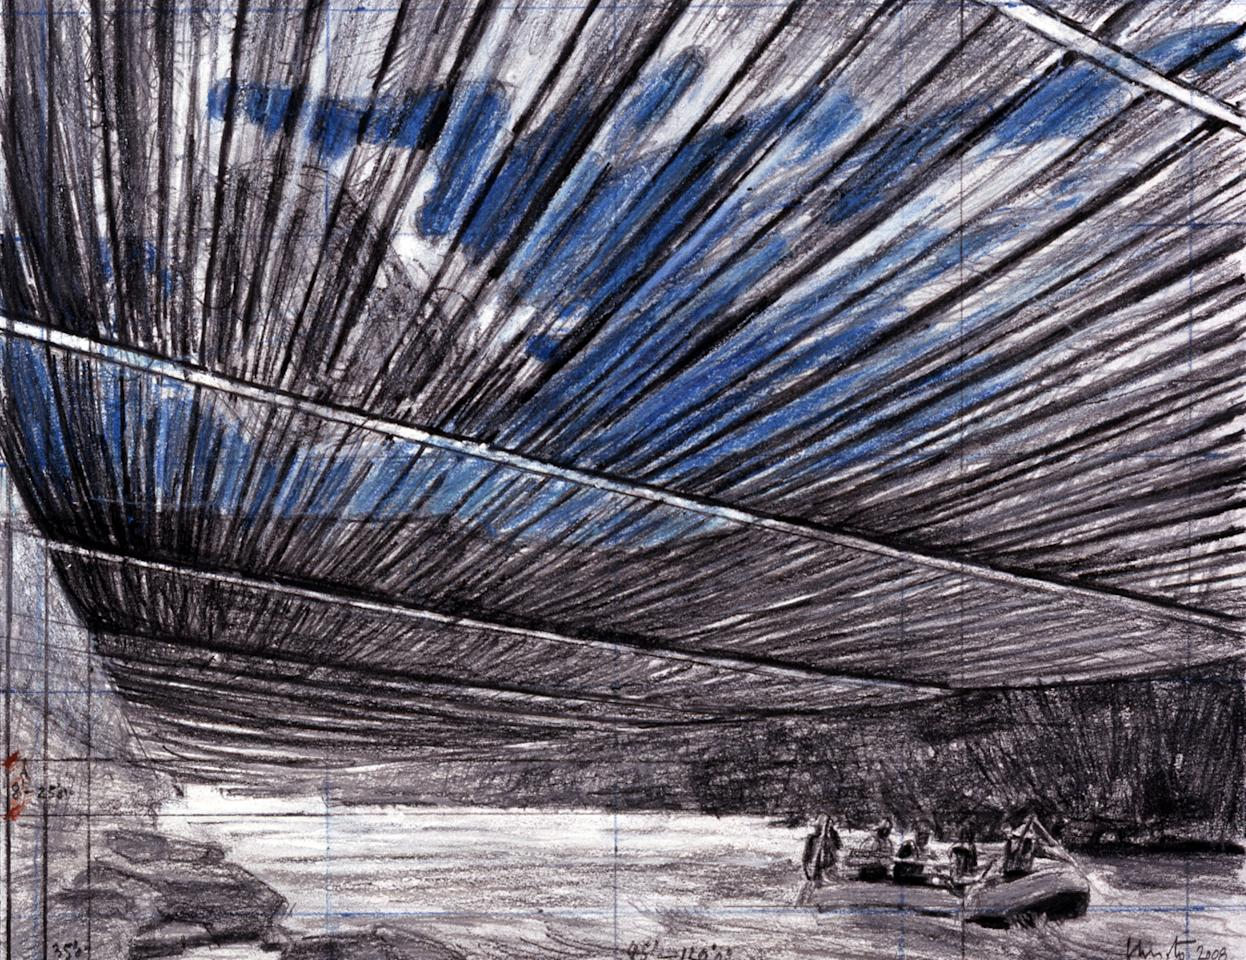 "FILE - This artist's drawing provided by Christo shows an image of a proposed art project by artists Christo and Jeanne-Claude that would suspend 5.9 miles of silvery, translucent fabric above parts of the Arkansas River in southern Colorado.   Christo's plan to suspend huge fabric panels over parts of the heavily rafted Arkansas River in Colorado is largely intact under a version federal land managers identified Thursday, July 28, 2011,  as the preferred alternative for the project. If the Bureau of Land Management issues a permit for Christo's ""Over the River,"" it could happen in August 2014. A final decision is expected this fall. (AP Photo/Christo)  NO SALES"